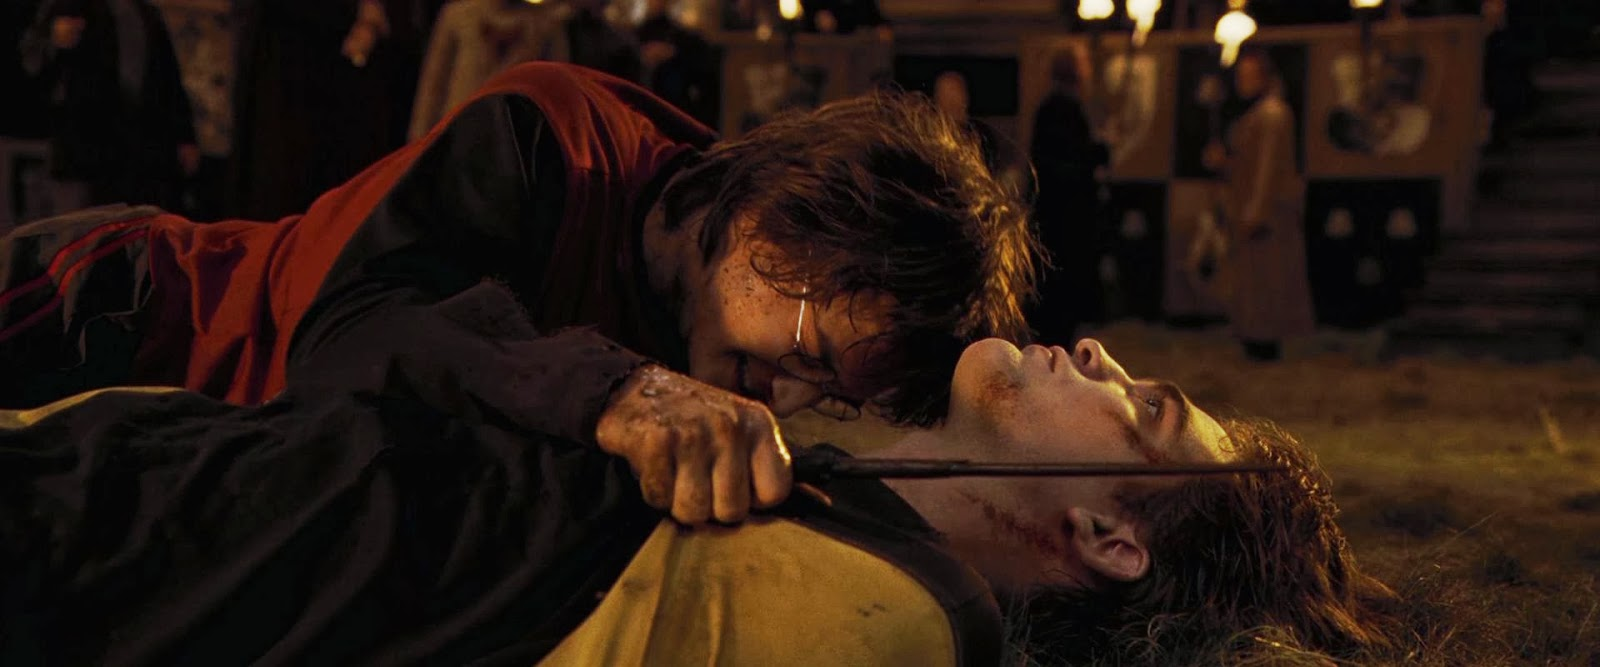 Harry Potter And The Goblet Of Fire Cedric Diggory Death Scene 25 Fictional Deaths Fr...